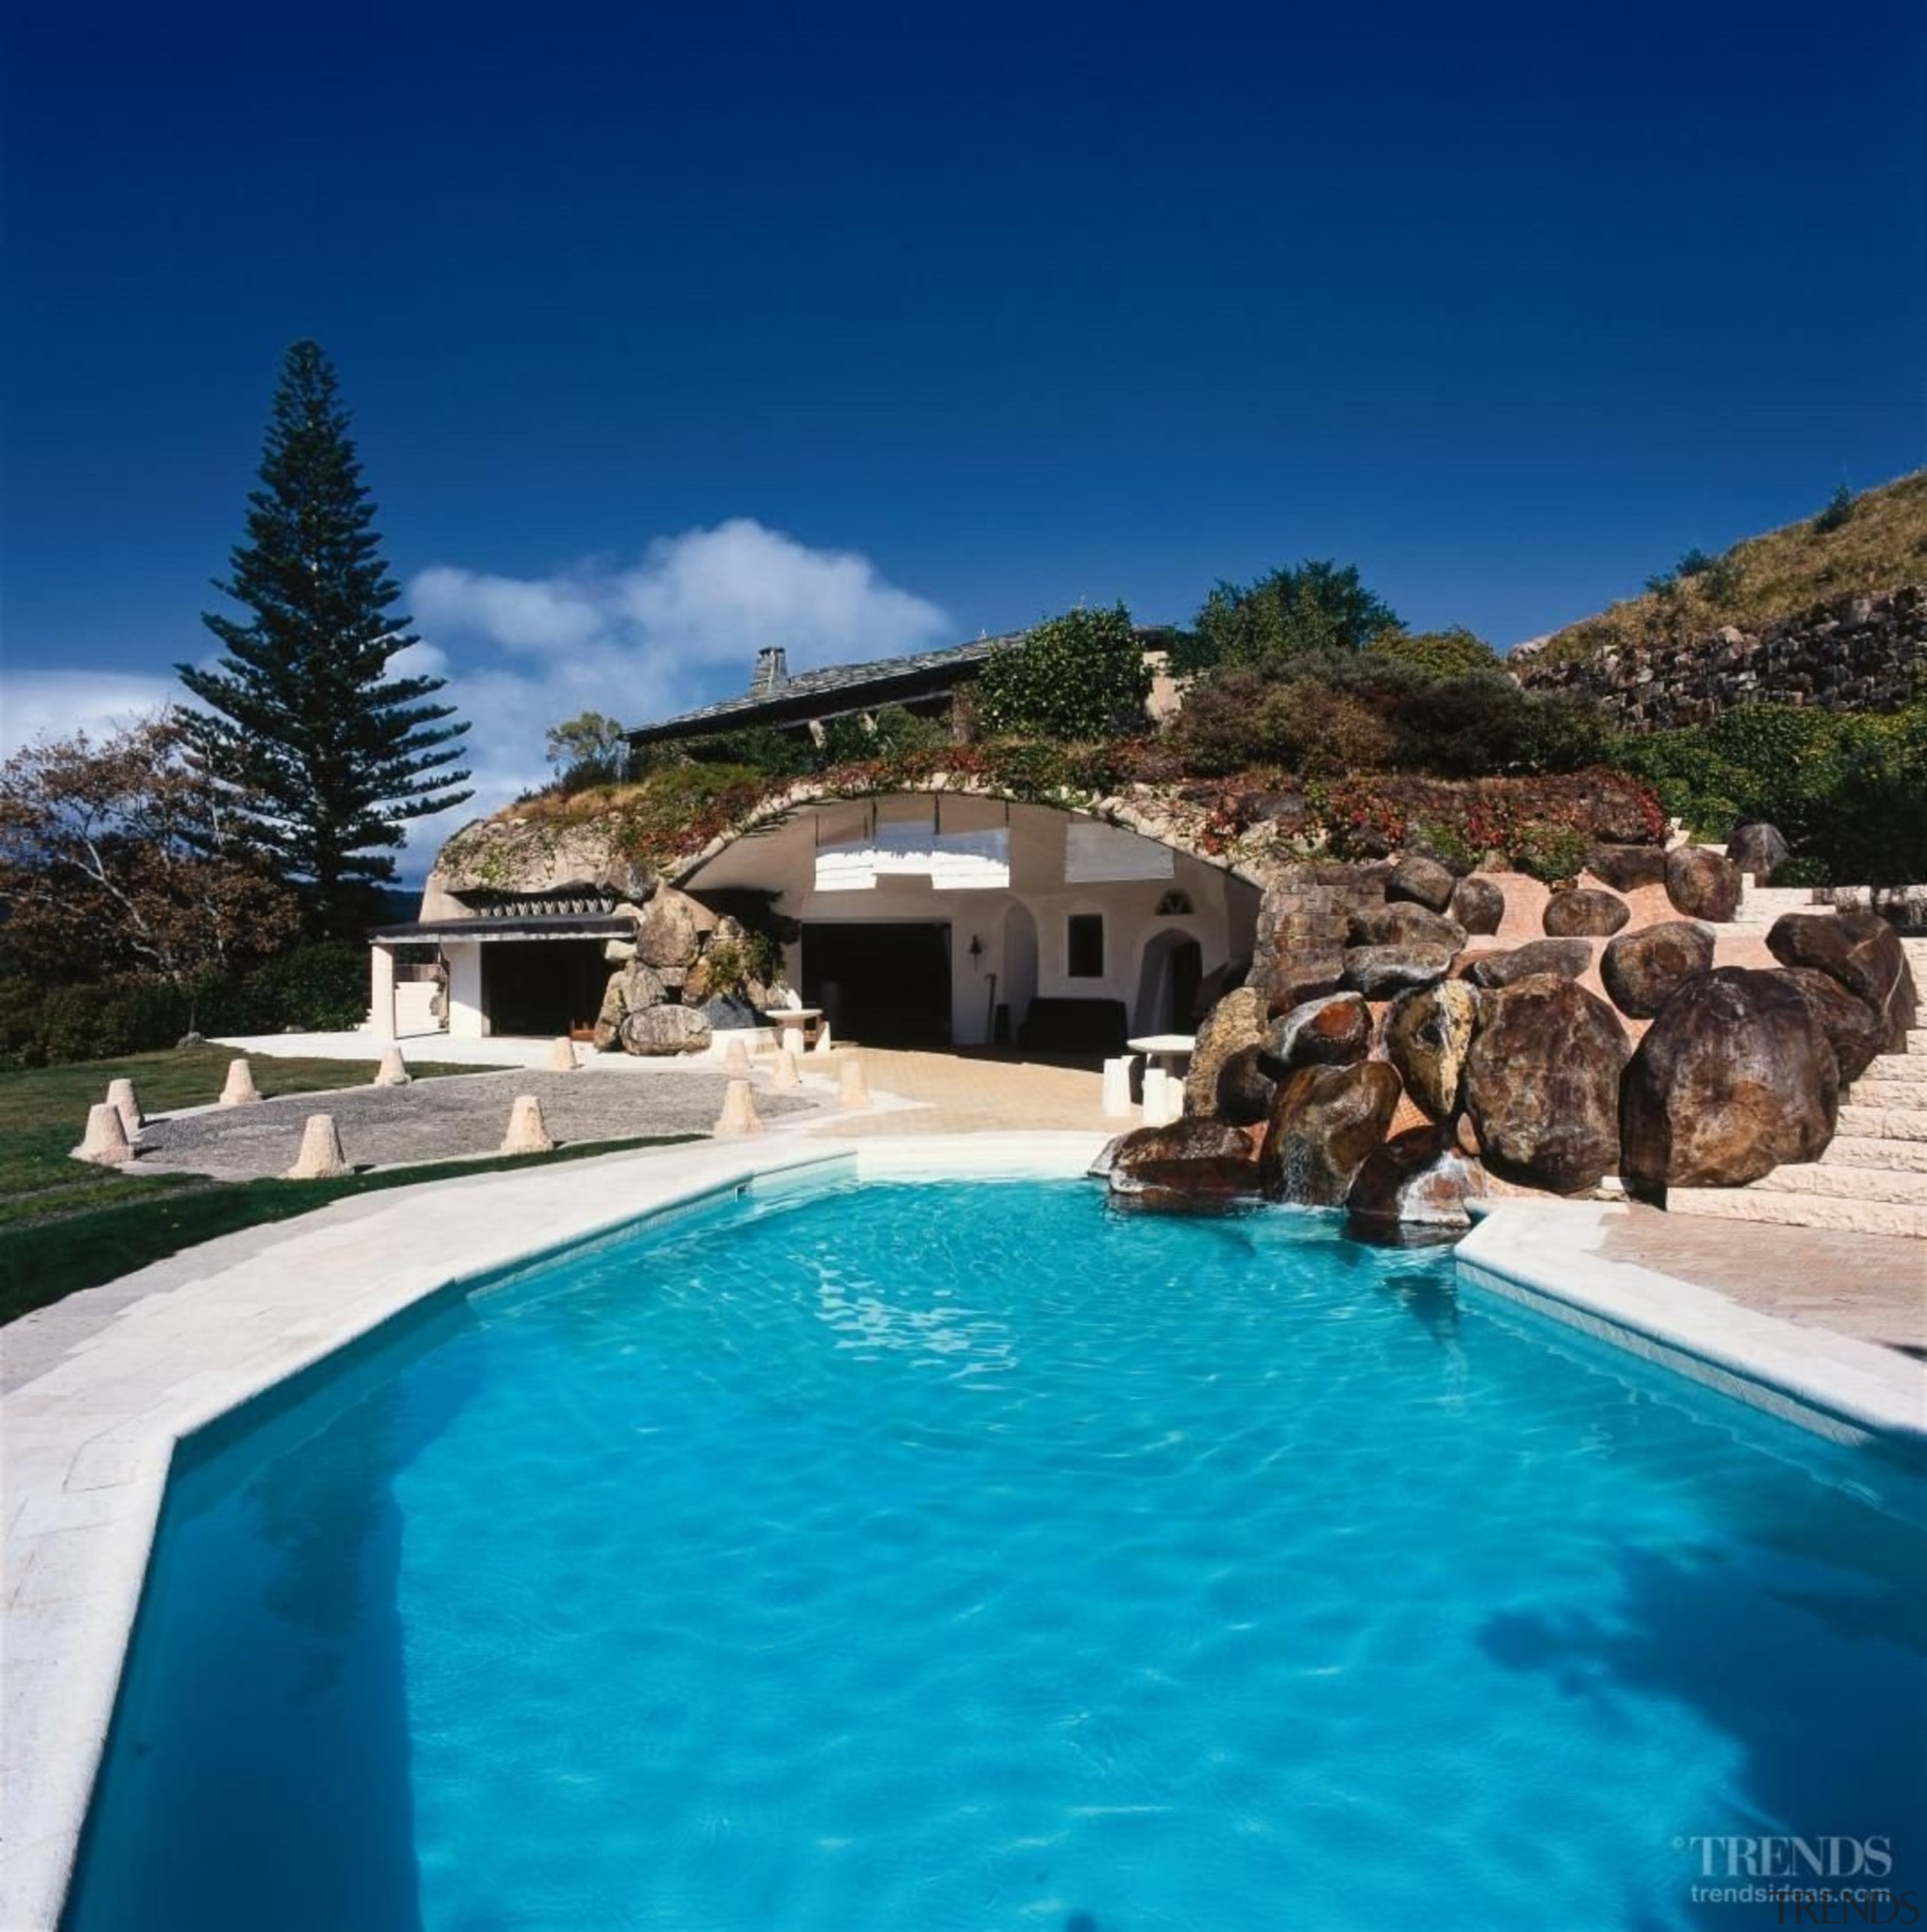 See more images from this collection estate, leisure, property, real estate, resort, resort town, sky, swimming pool, vacation, villa, blue, teal